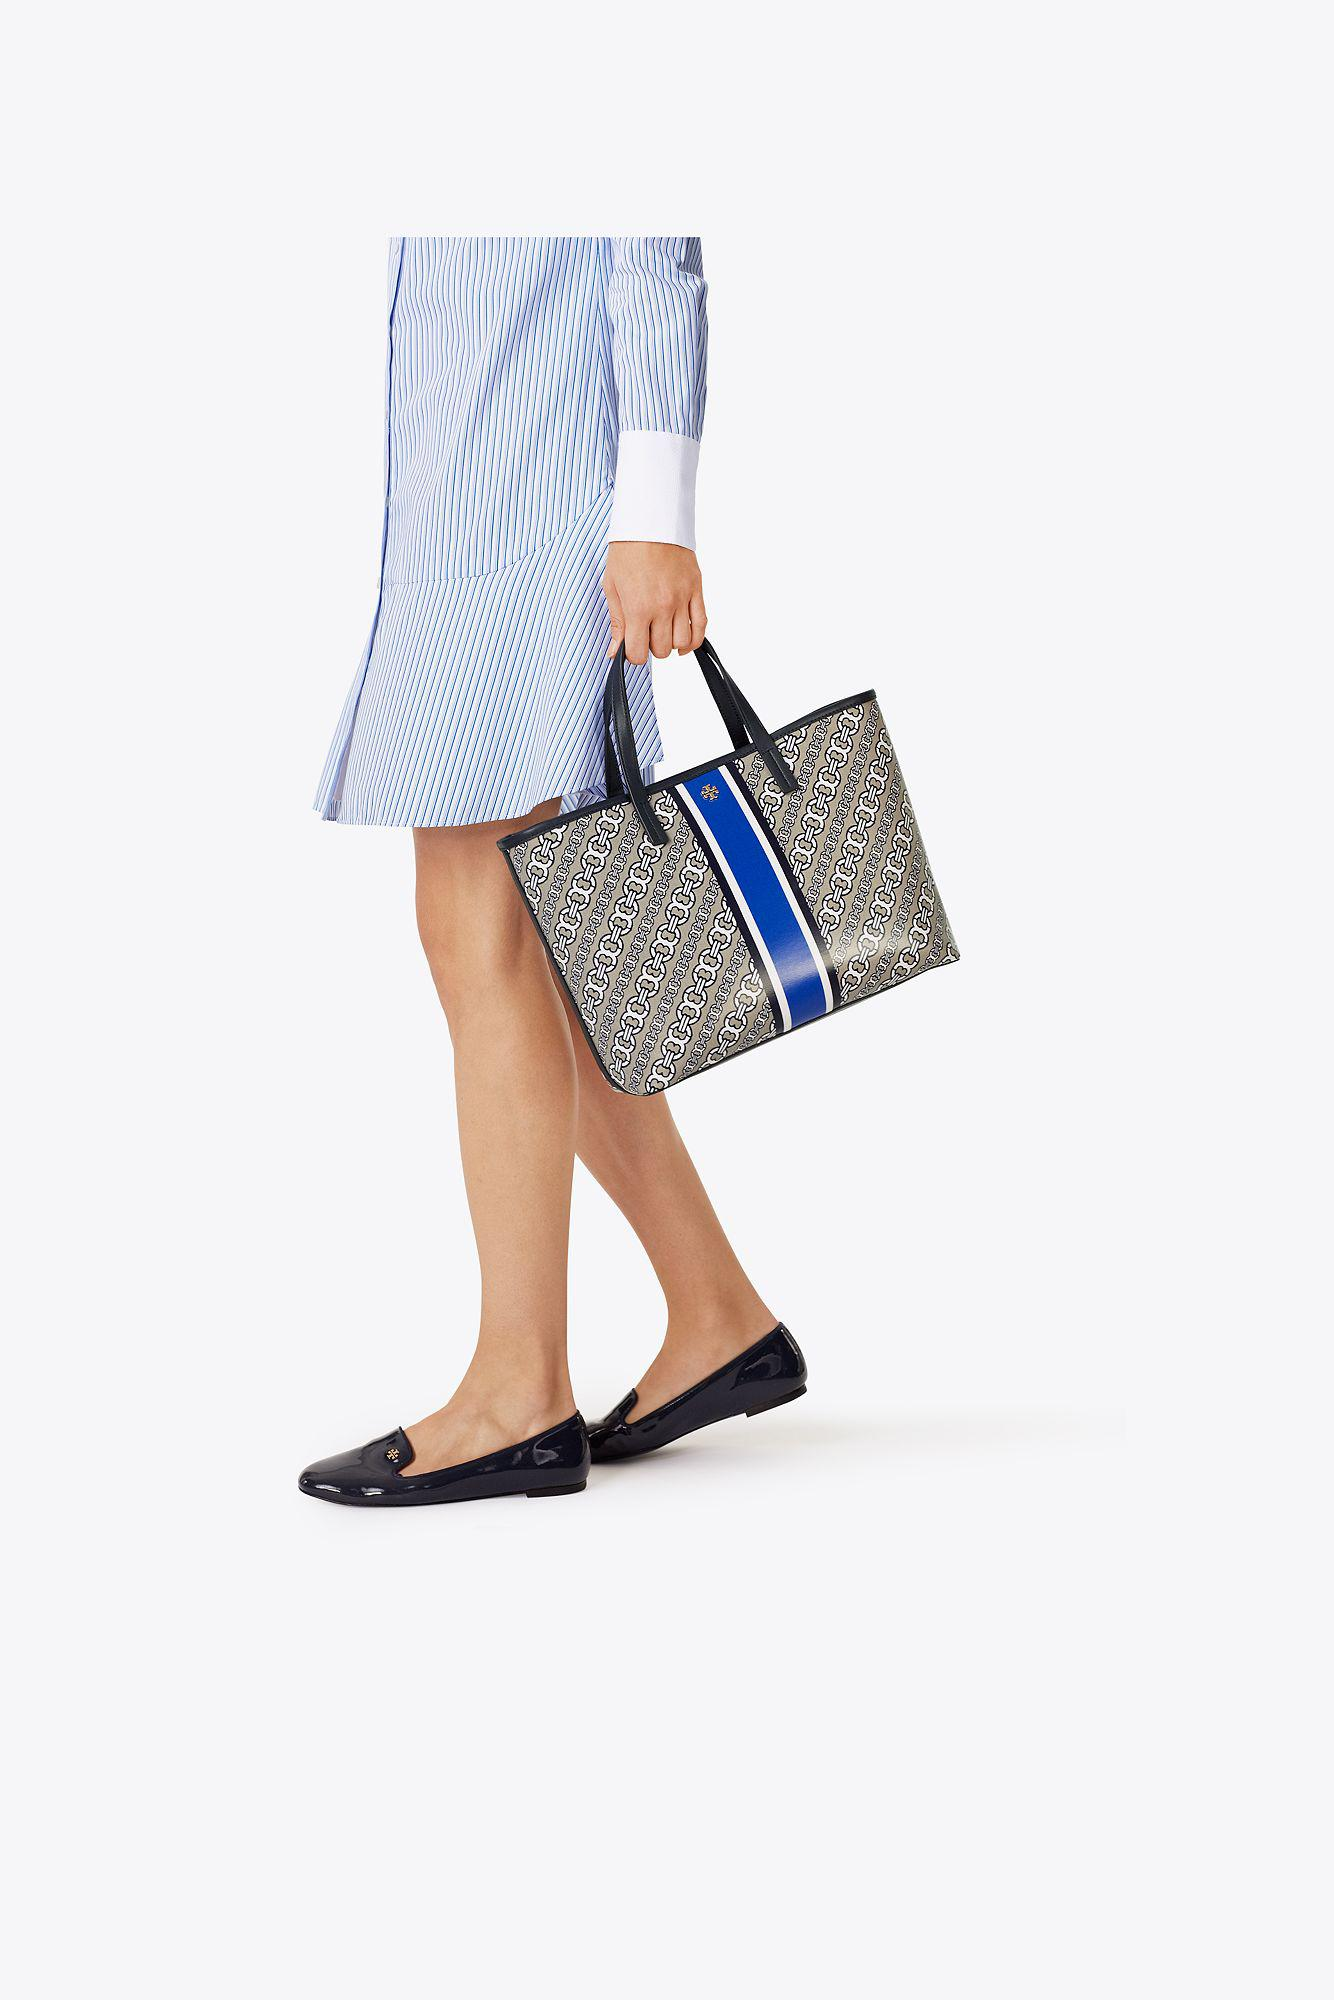 1507138cabfd Lyst - Tory Burch Gemini Link Small Tote